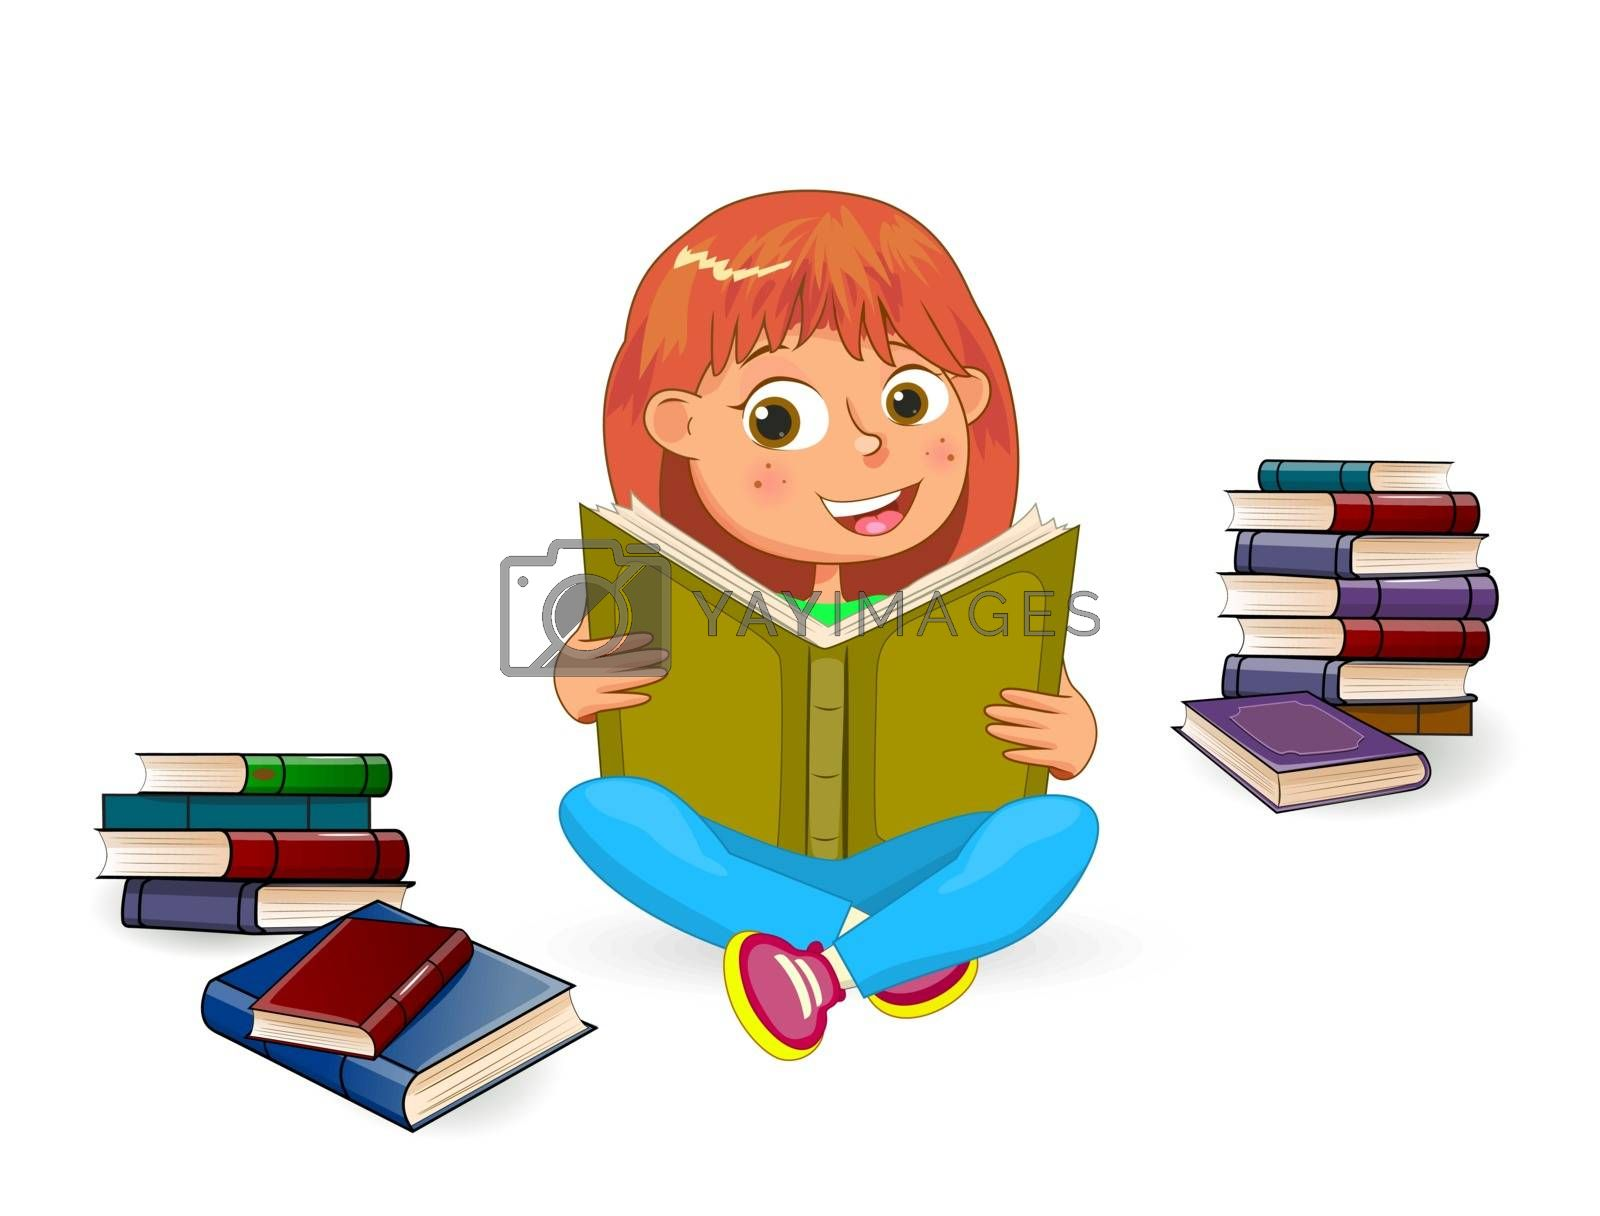 Girl with book in hands on a white background. Girl reading a book. Girl sitting among books.